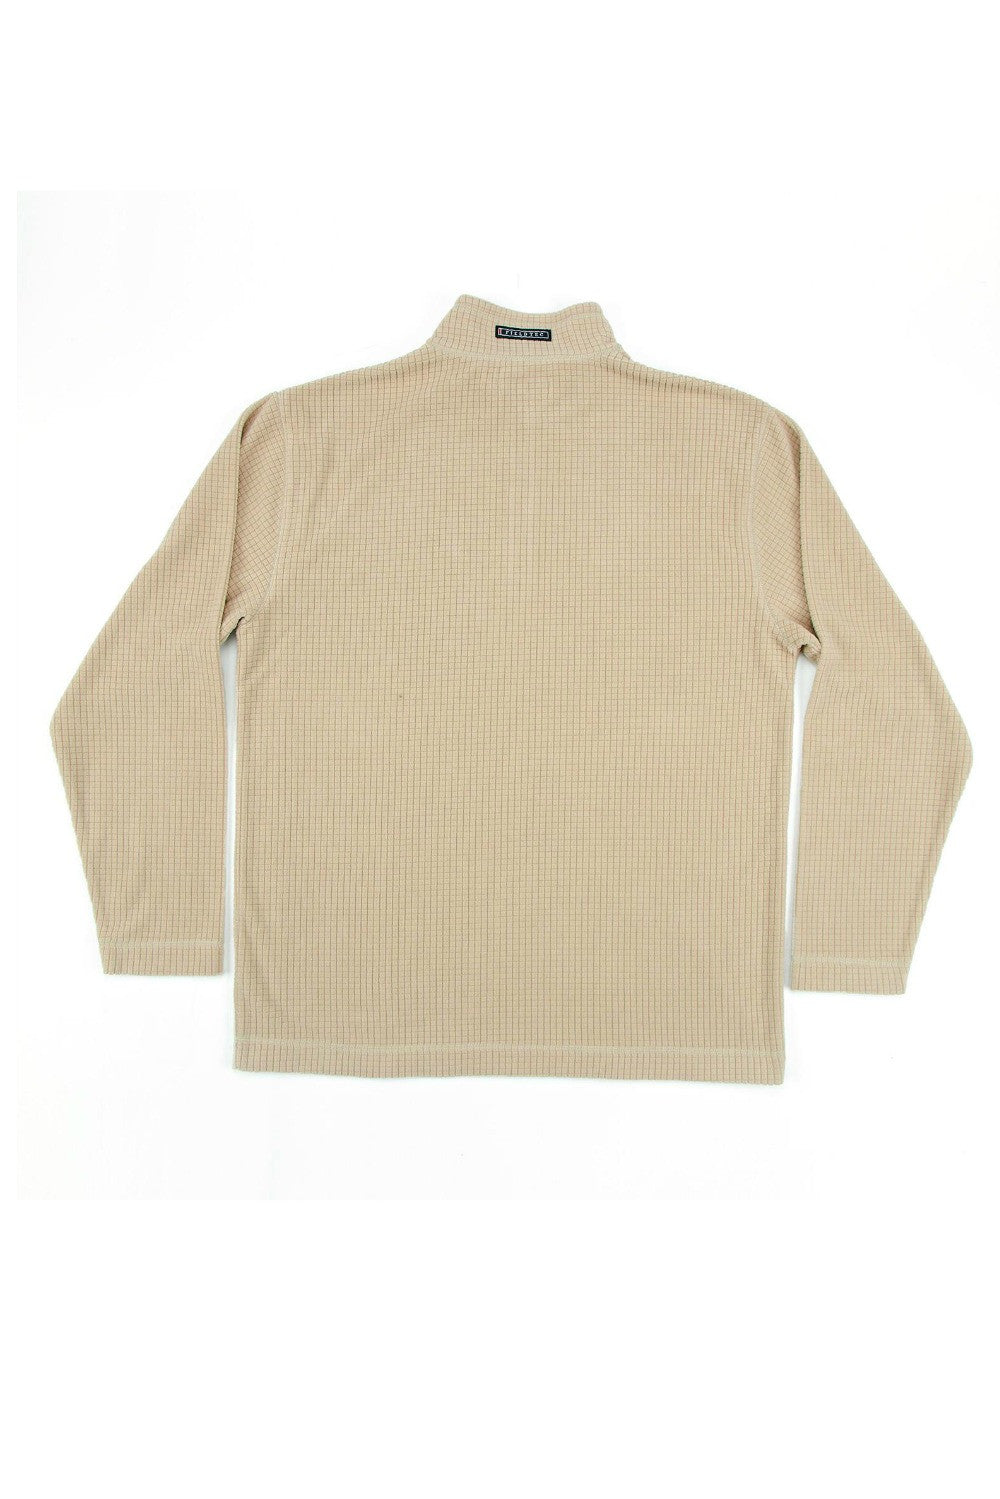 Southern Marsh: Pullover Fleece, Tan